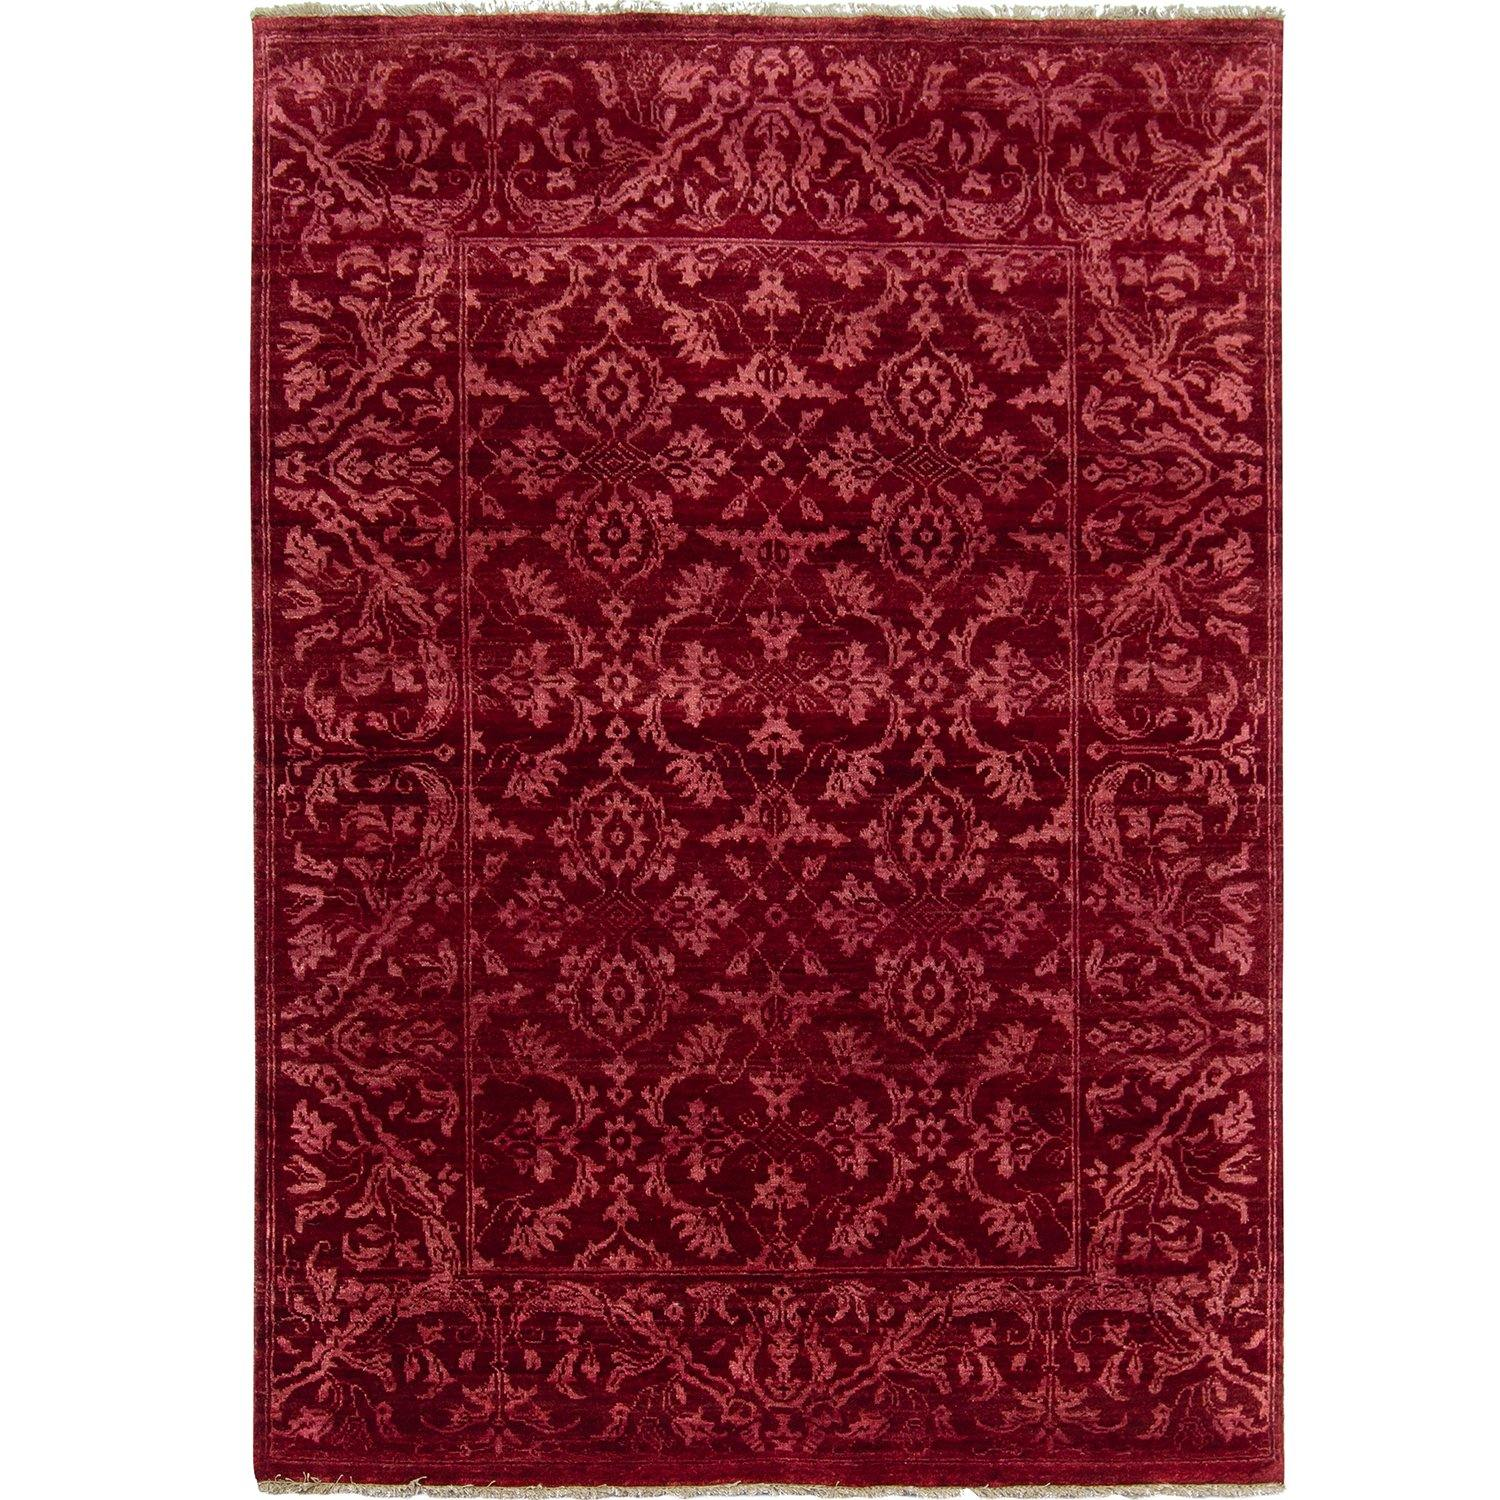 Contemporary Hand-knotted NZ Wool Damask Rug 123cm x 184cm Persian-Rug | House-of-Haghi | NewMarket | Auckland | NZ | Handmade Persian Rugs | Hand Knotted Persian Rugs